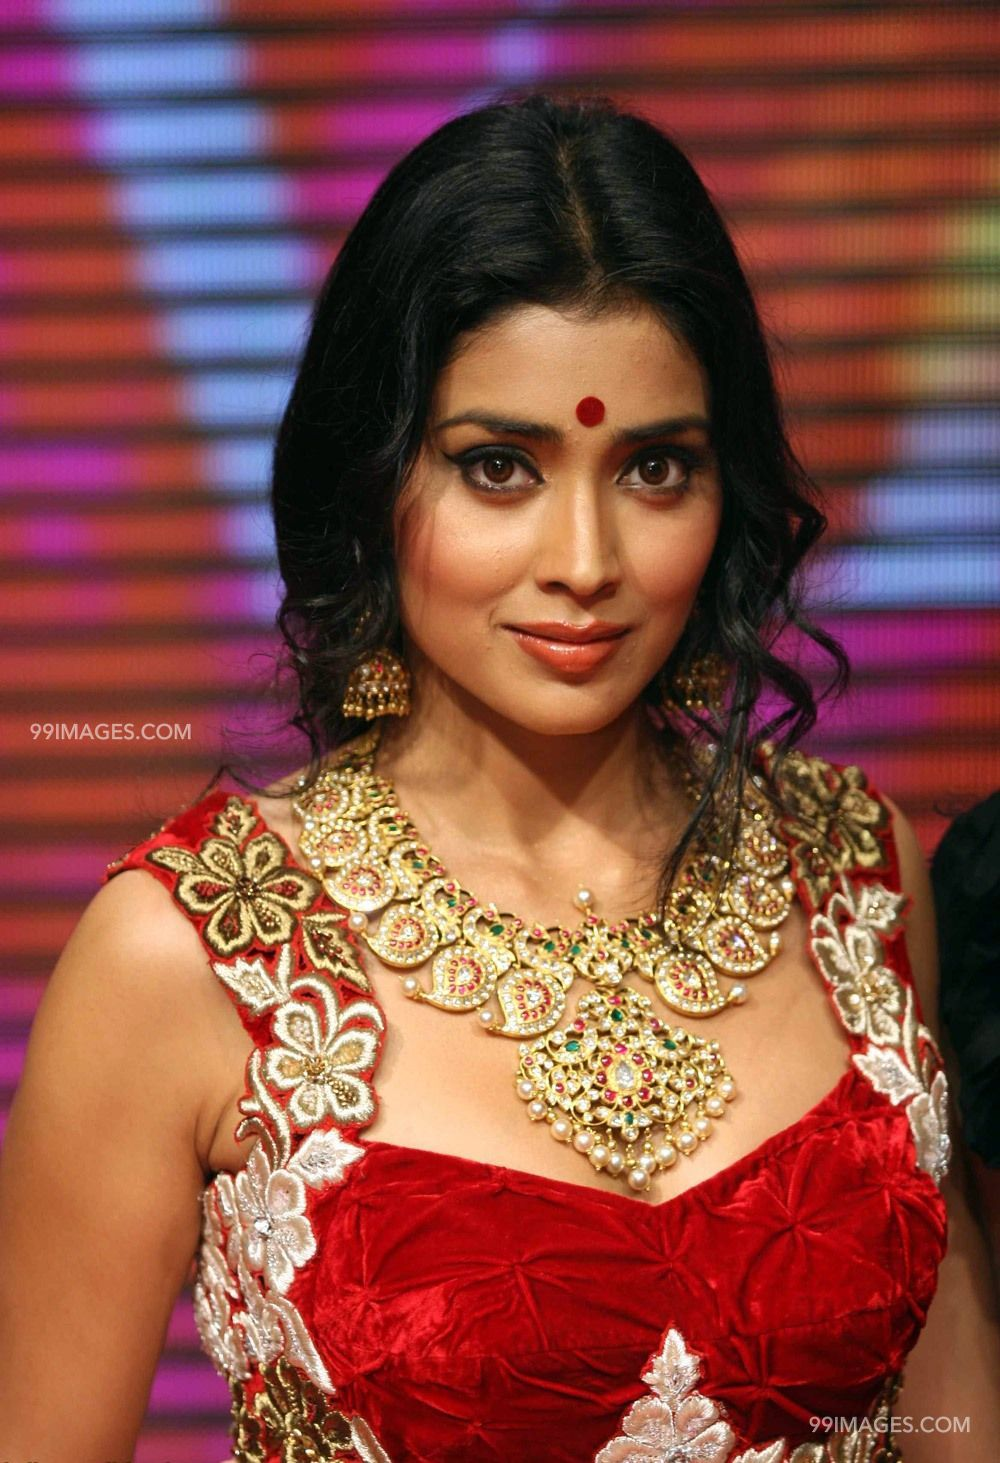 Shriya Saran Beautiful HD Photoshoot Stills (1080p) (3309) - Shriya Saran